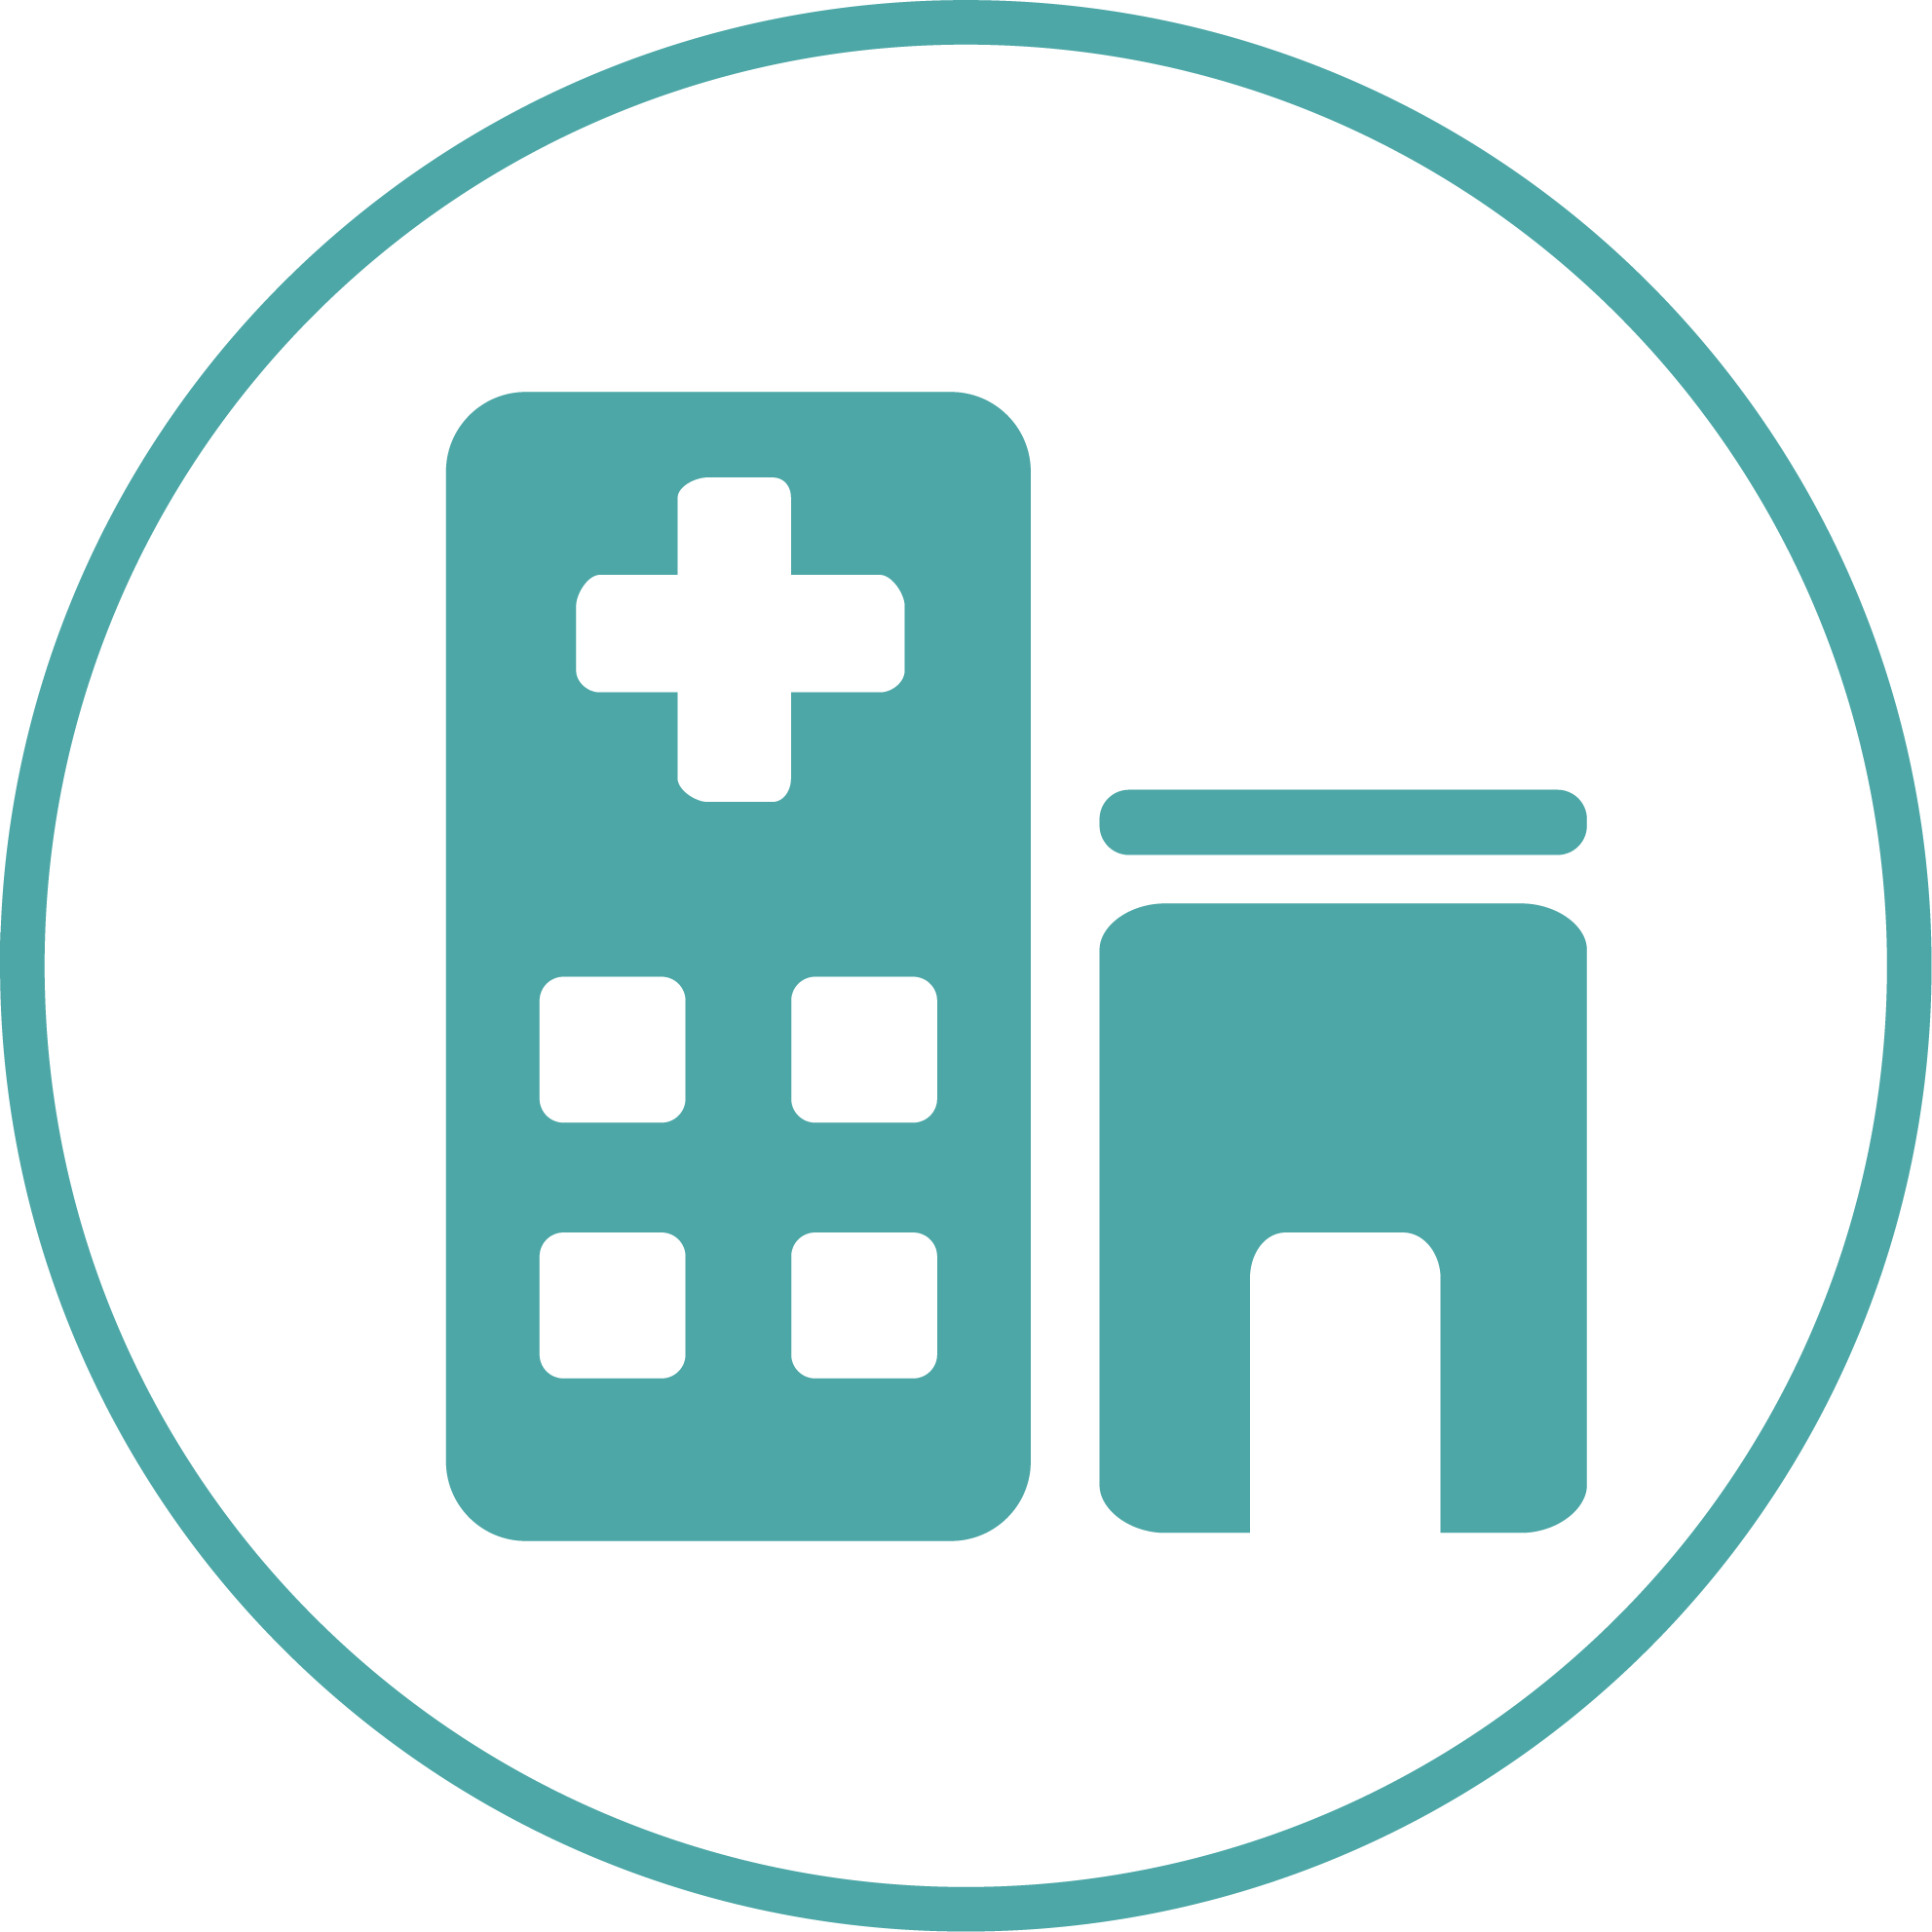 Uie icon png healthcare. Hospital clipart receptionist